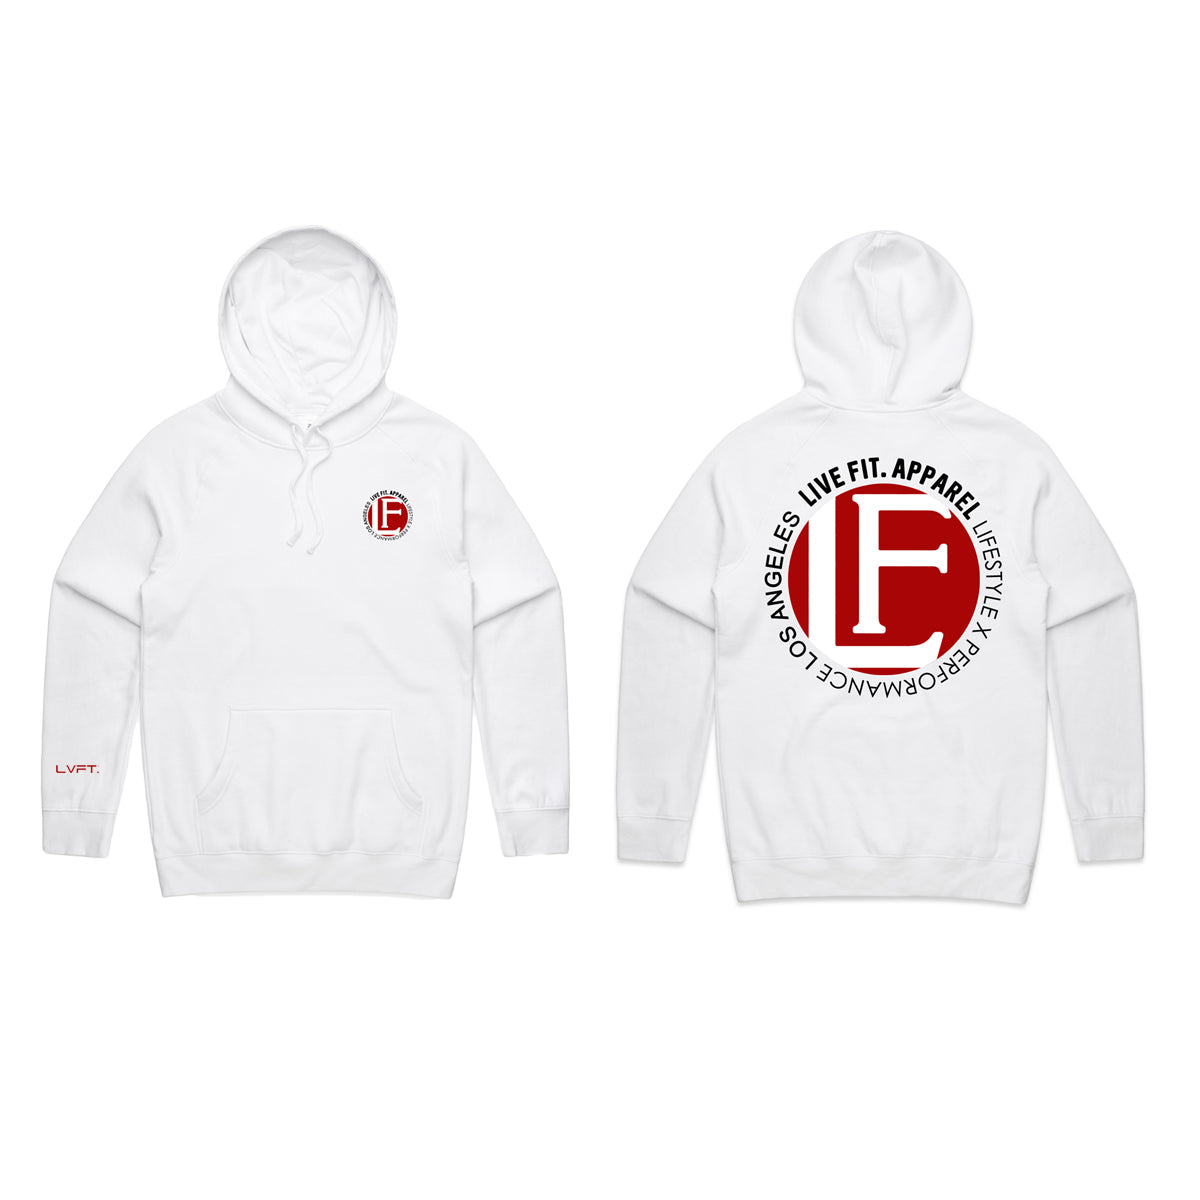 Live Fit Apparel BACK YARD HOODIE - WHITE - LVFT